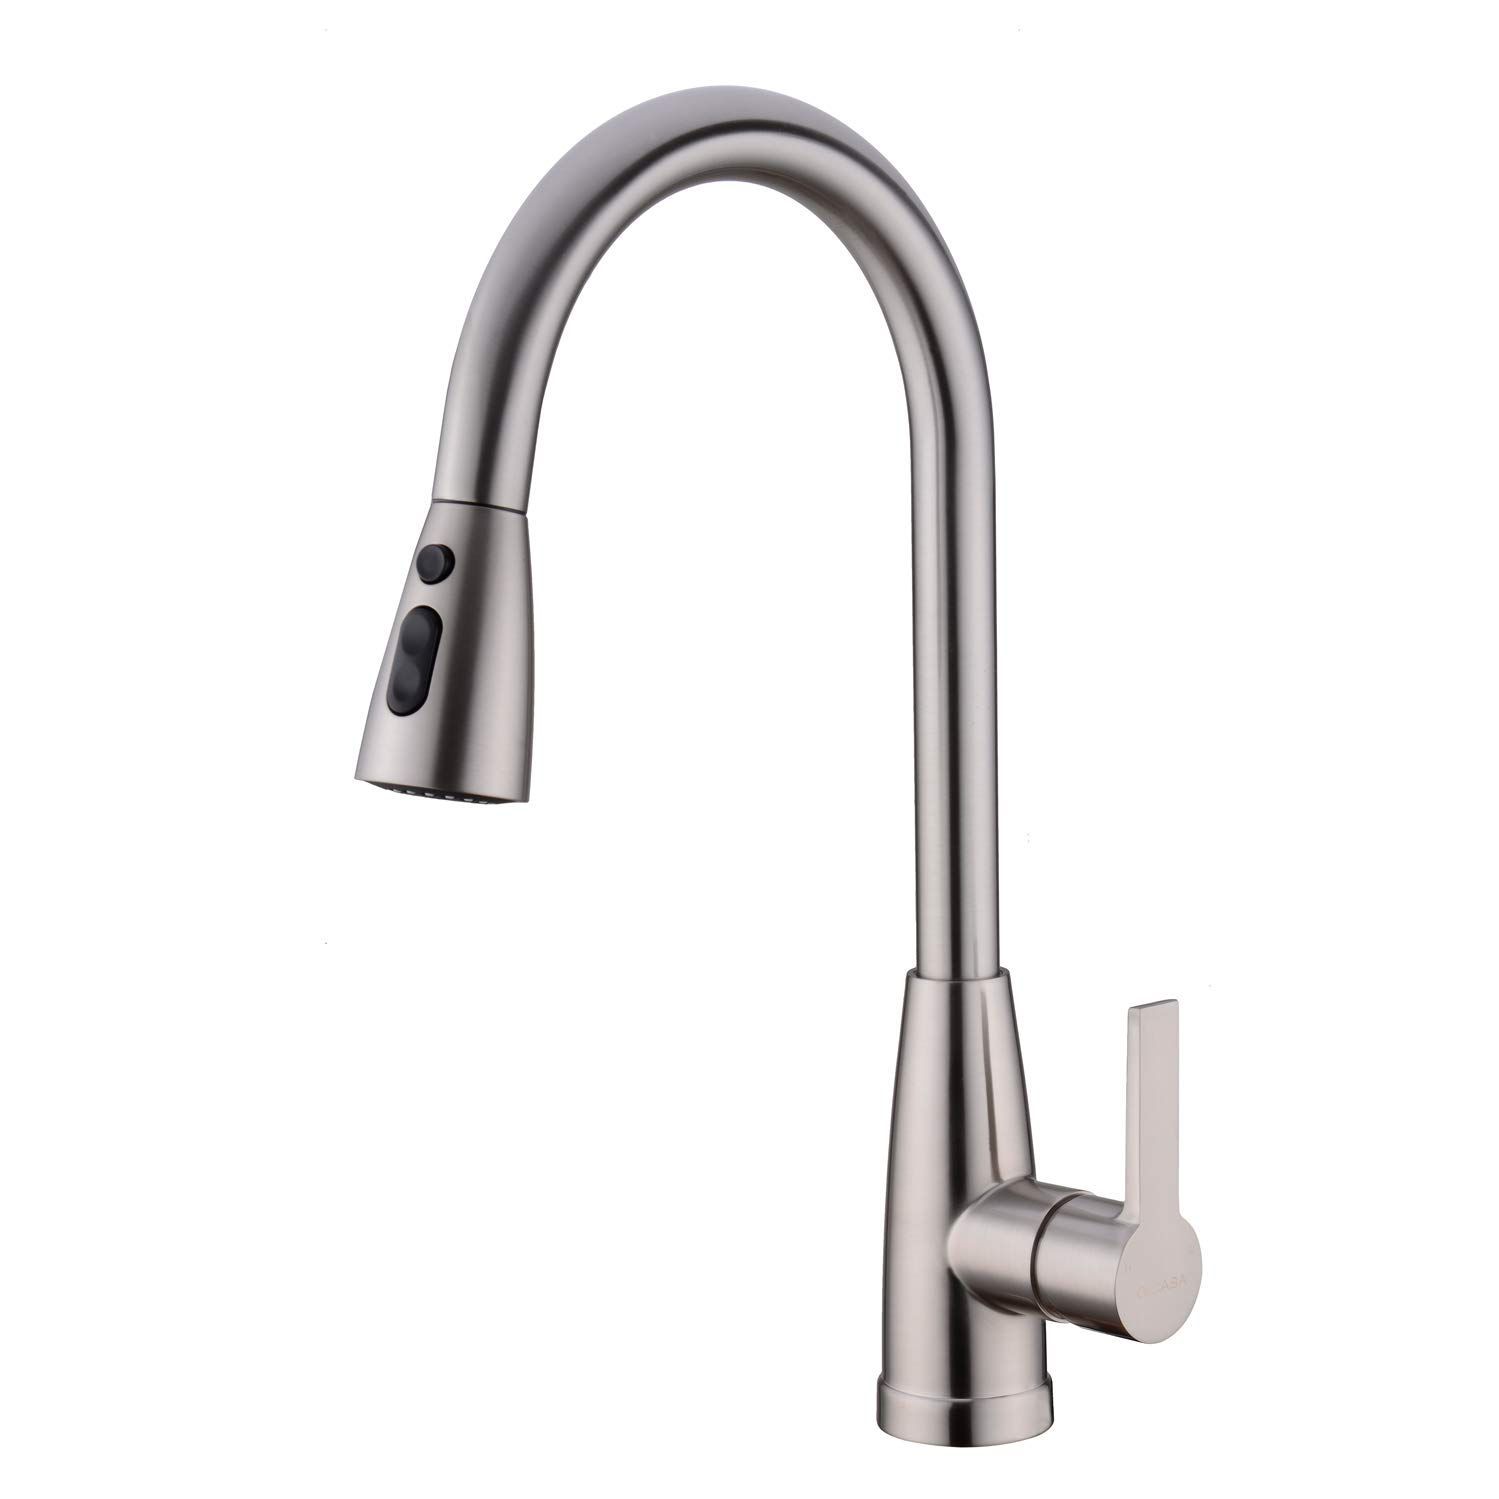 Gicasa Modern Single Lever Brushed Nickel Kitchen Faucet Pull Out